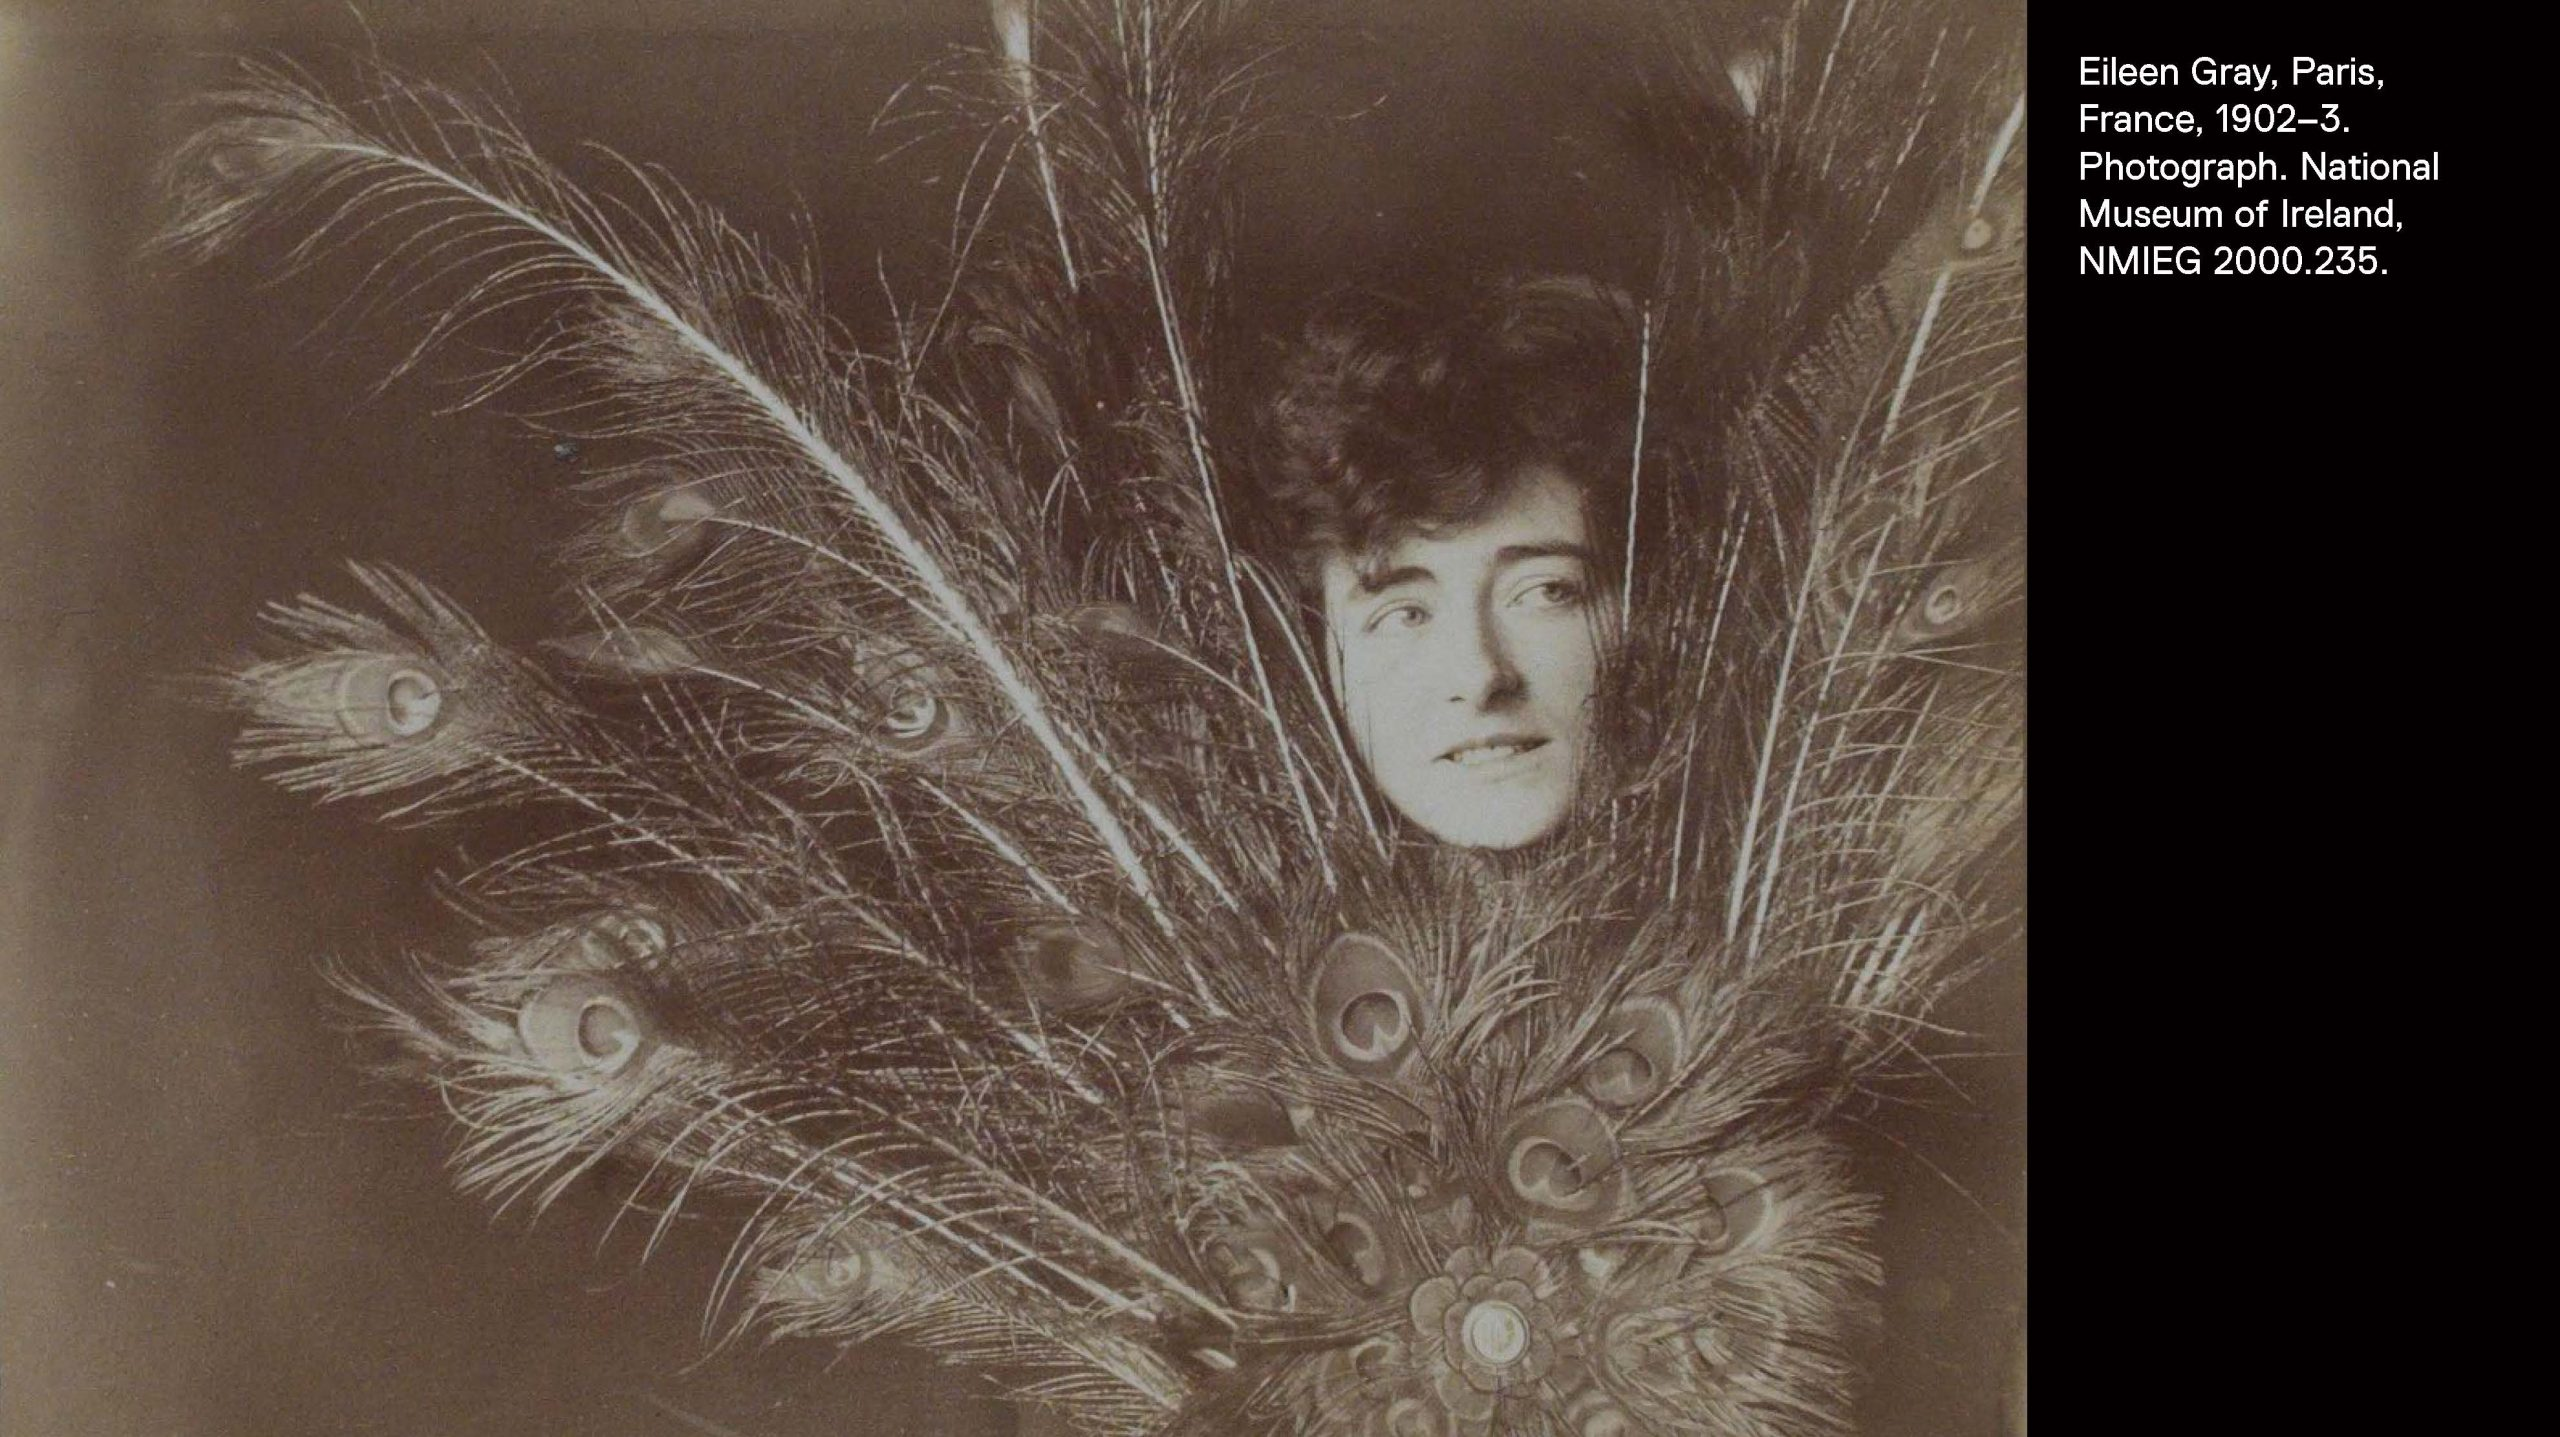 Sepia-toned portrait of Gray's face emerging from behind a bundle of peacock feathers.